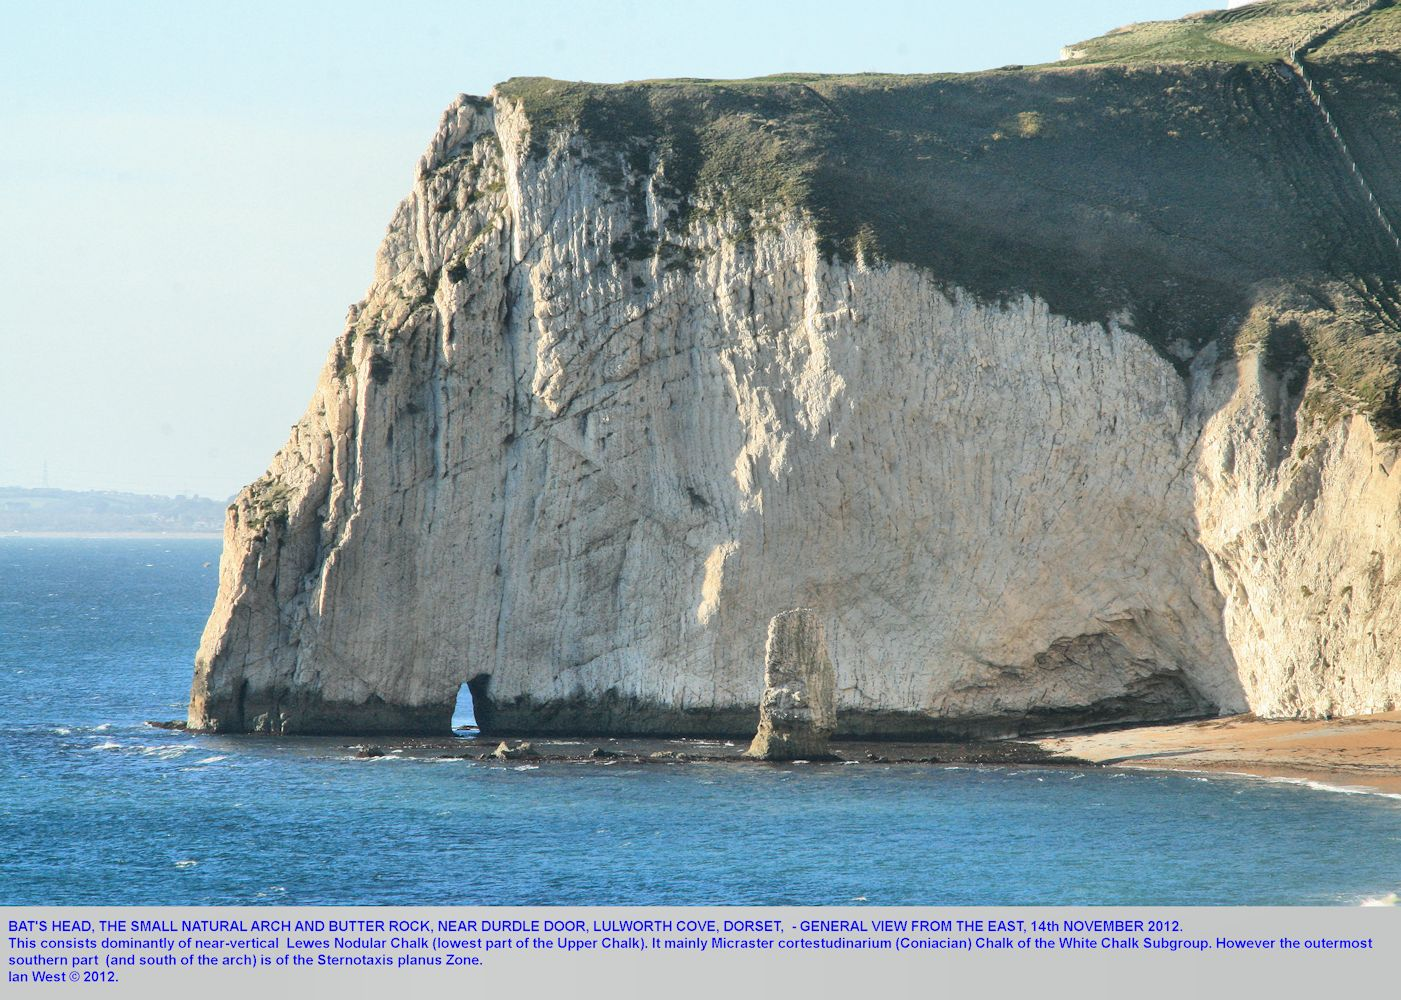 Bat's Head, west of Durdle Door, near Lulworth Cove, Dorset, 14th November 2012